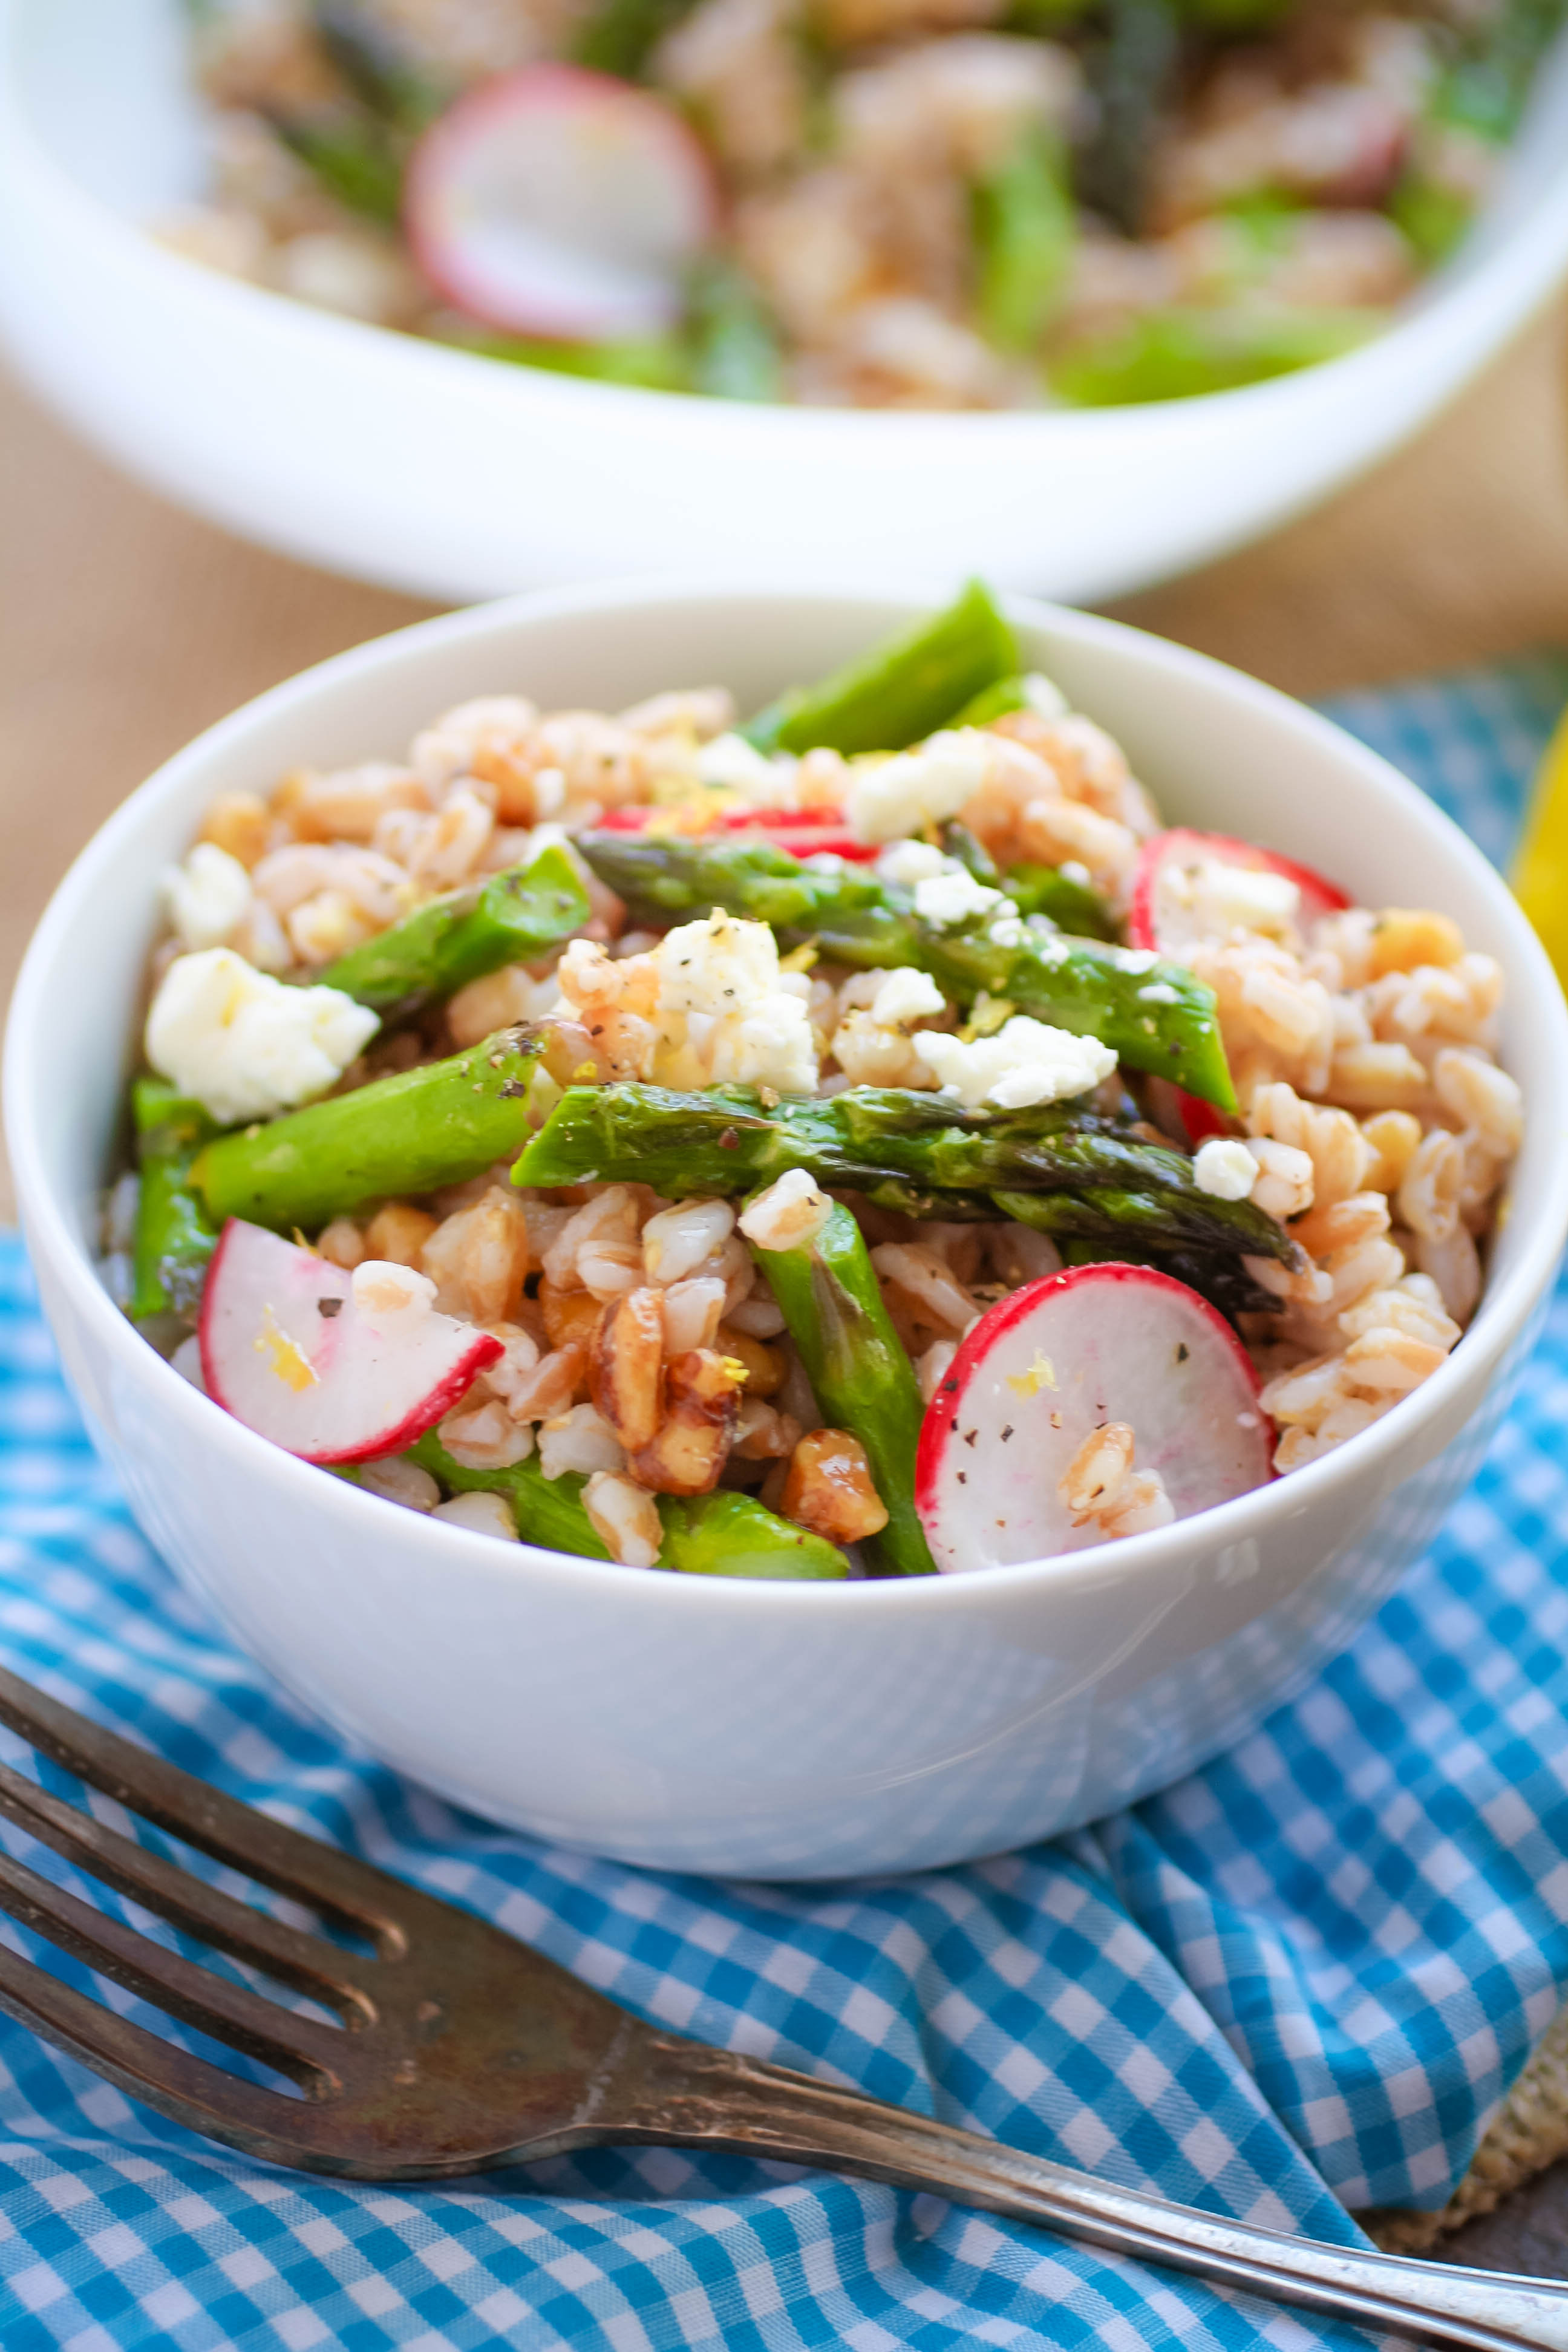 Farro Salad with Asparagus, Radishes & Lemon Vinaigrette is nice as a side or as part of a lighter meal. Enjoy this Farro Salad with Asparagus, Radishes & Lemon Vinaigrette this season.